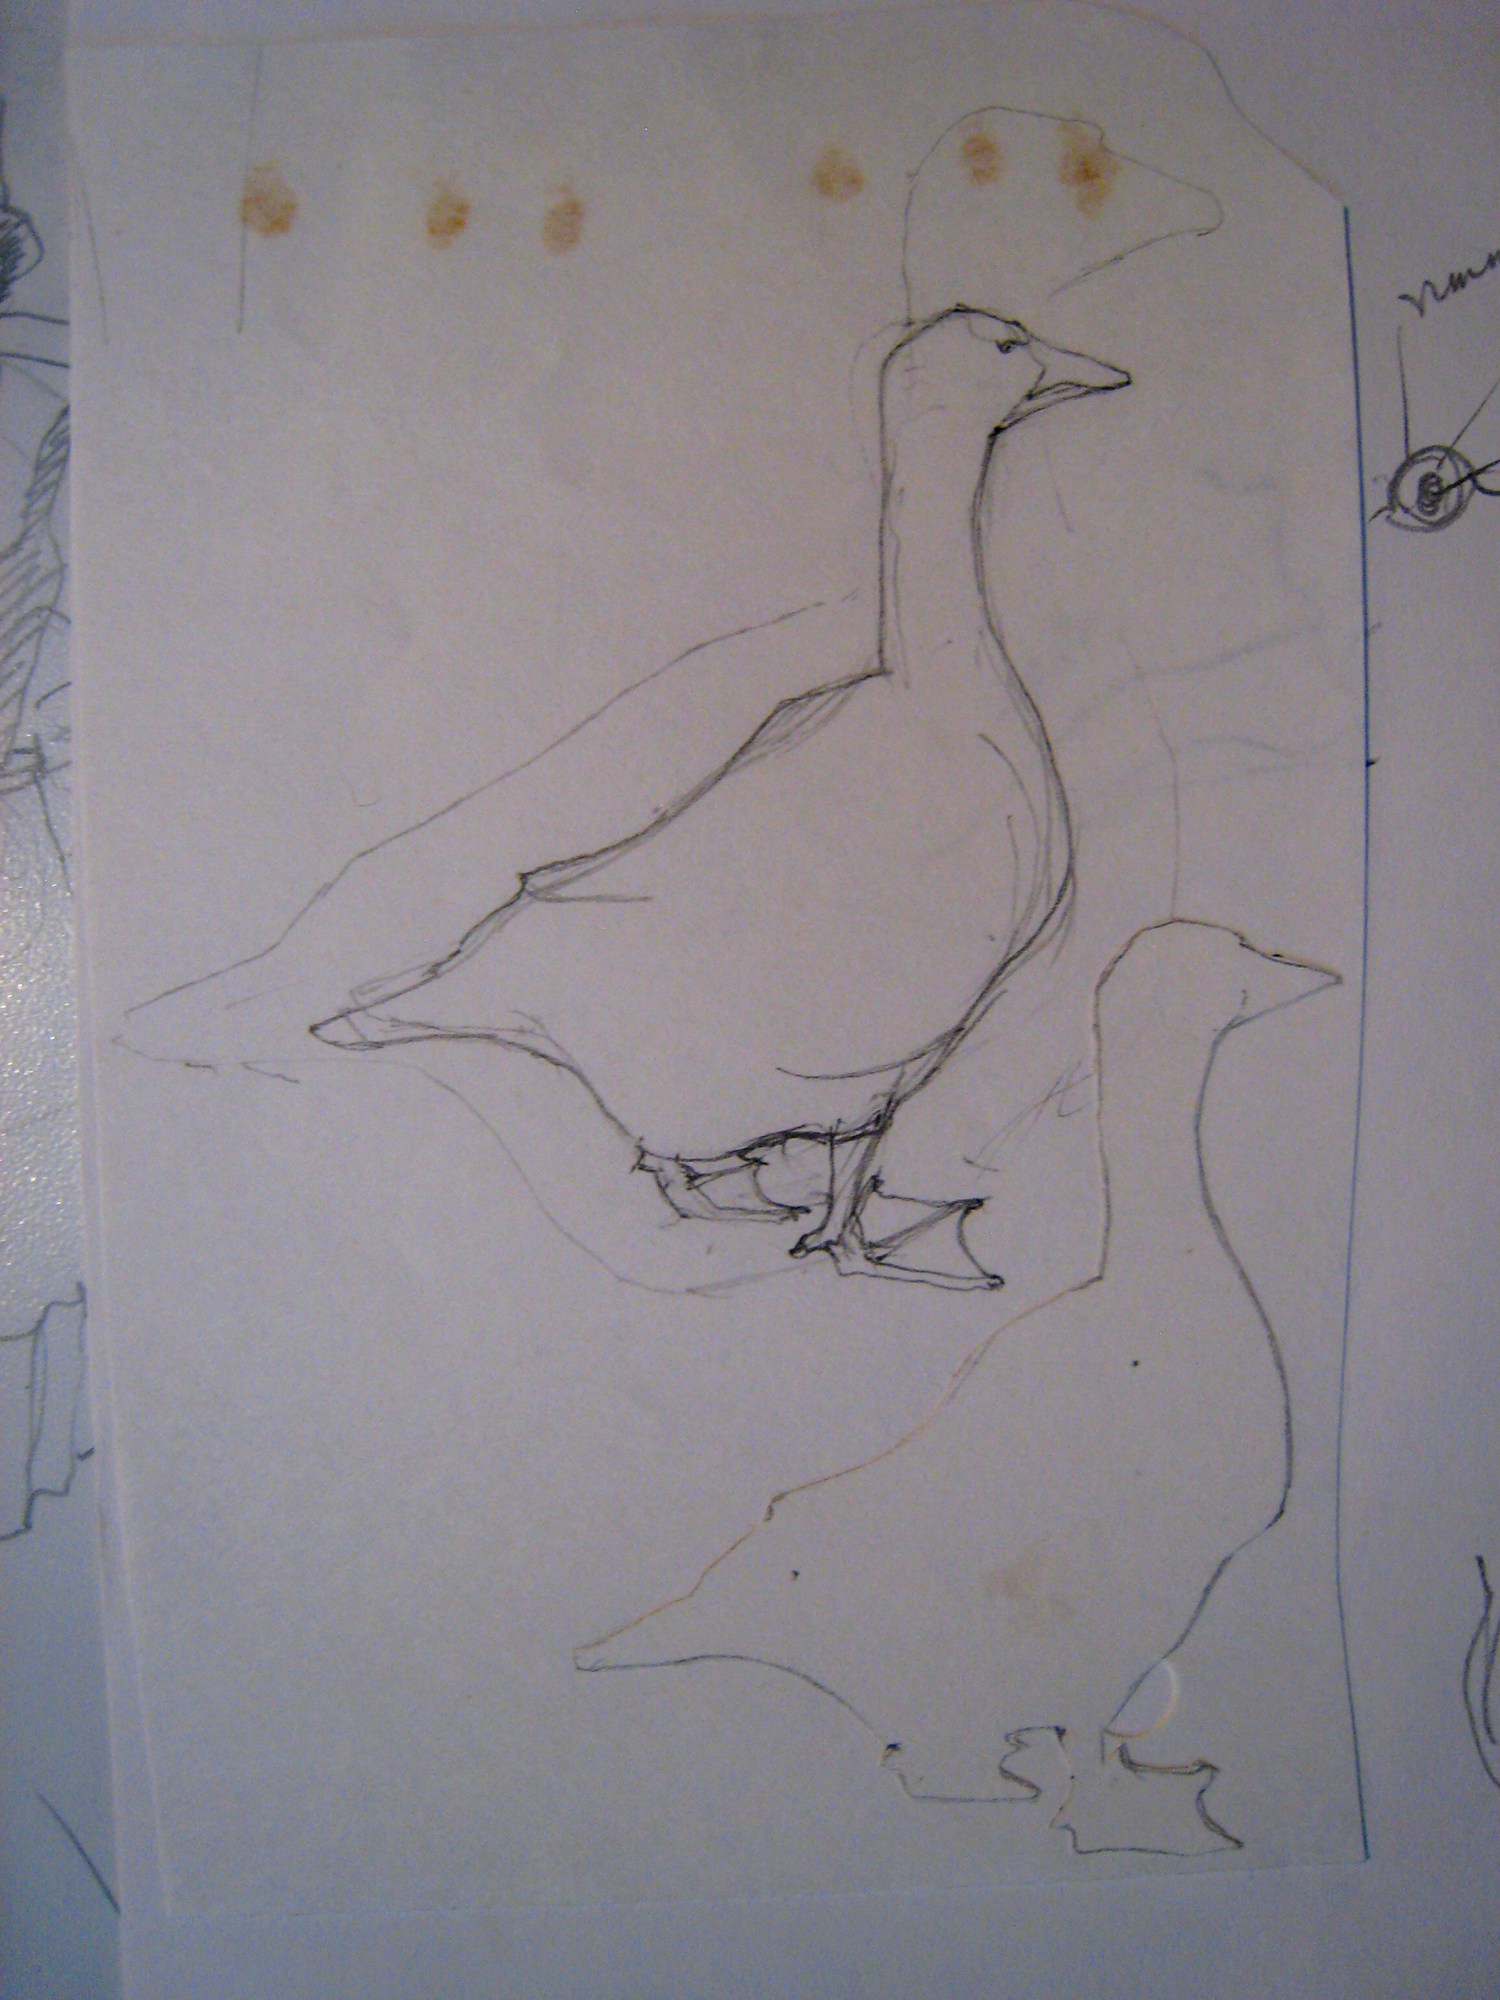 APM Ducks and Geese